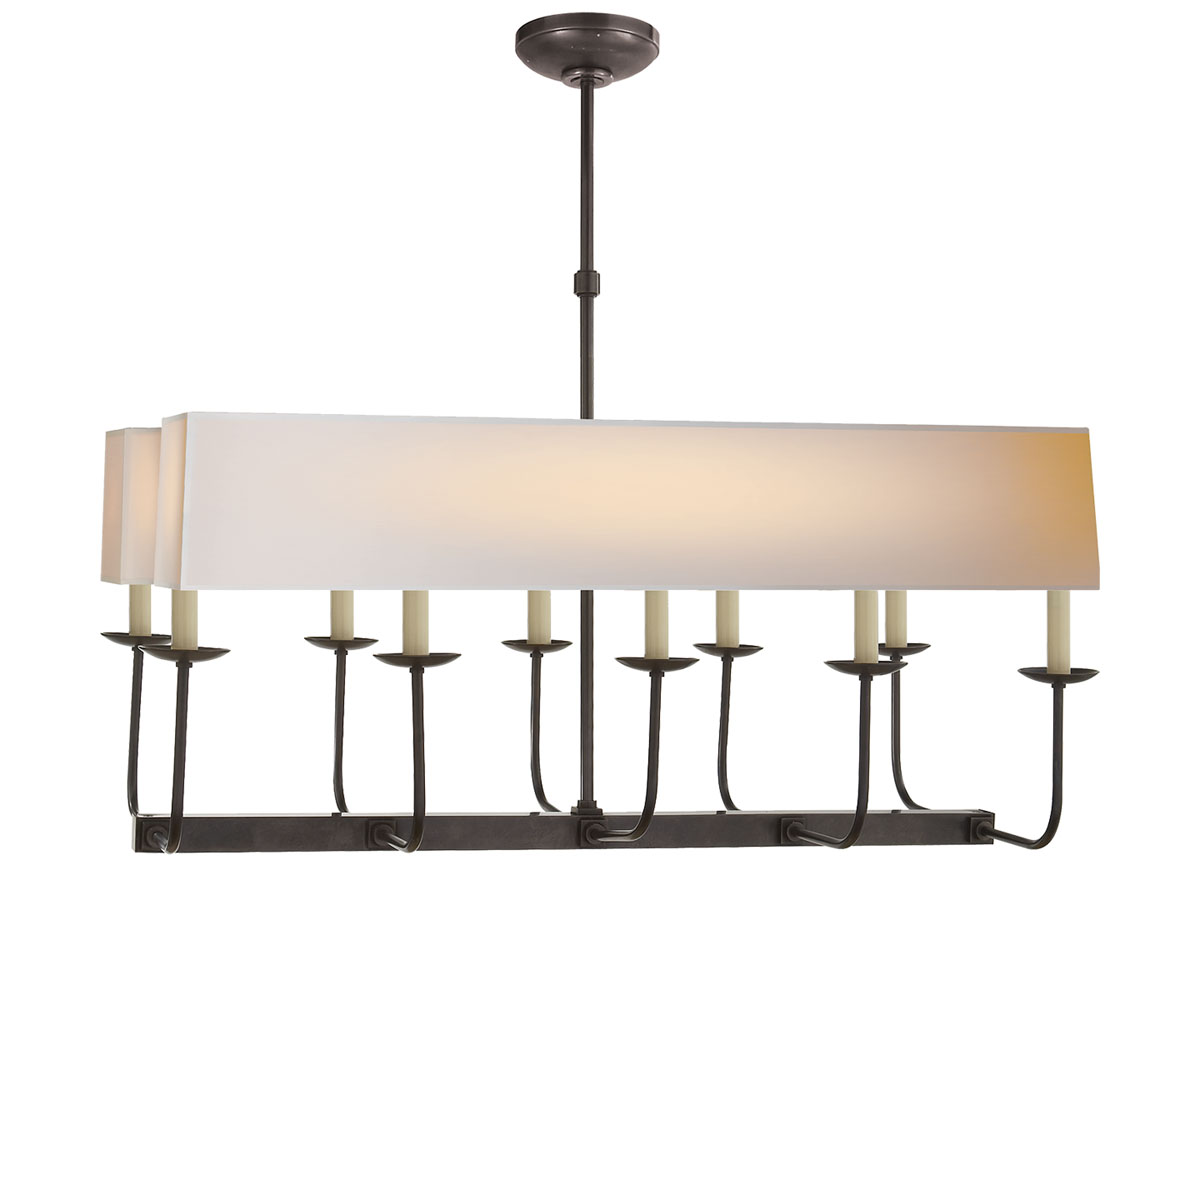 Bronze With Wax Finish 2 Linear Natural Paper Shades Shade Chevron Left Branched